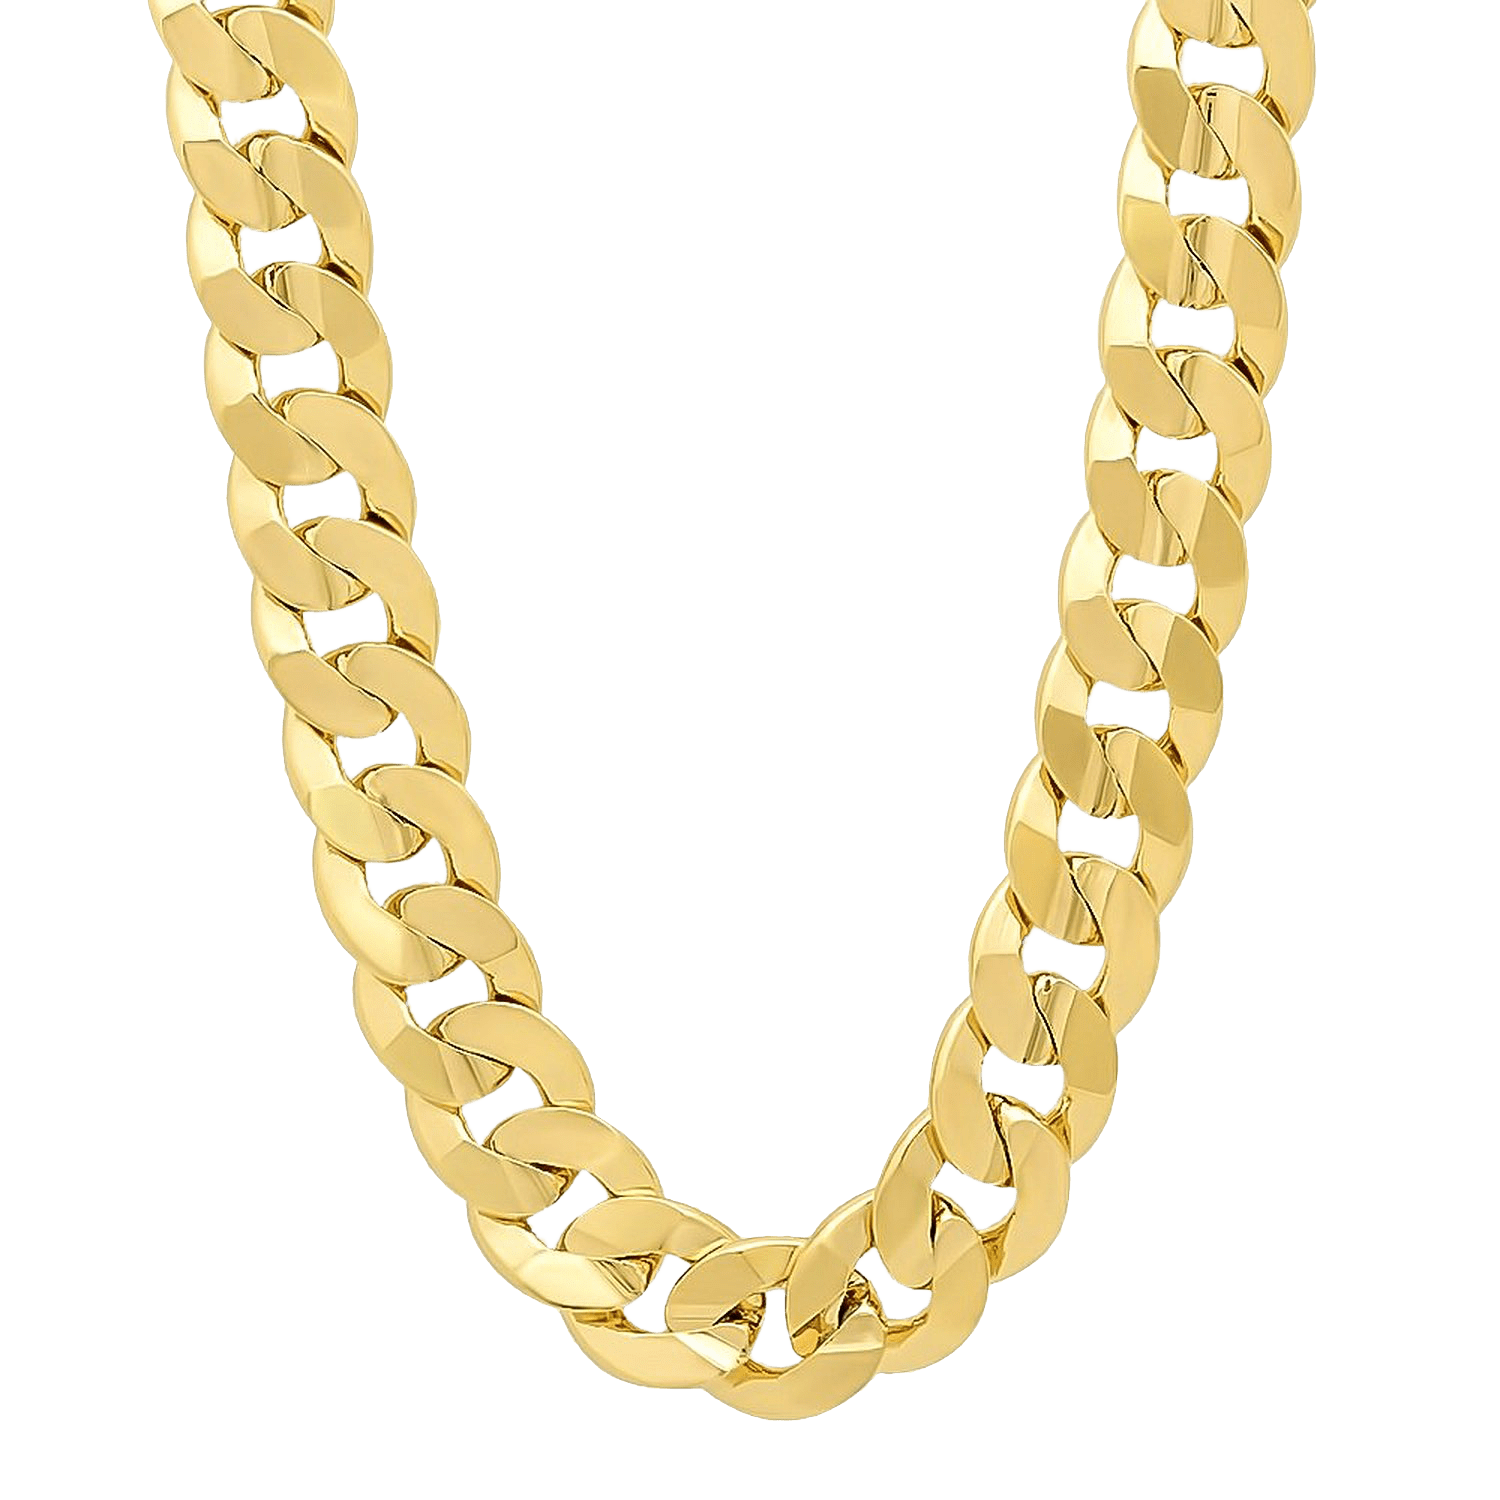 Chain PNG - 2194